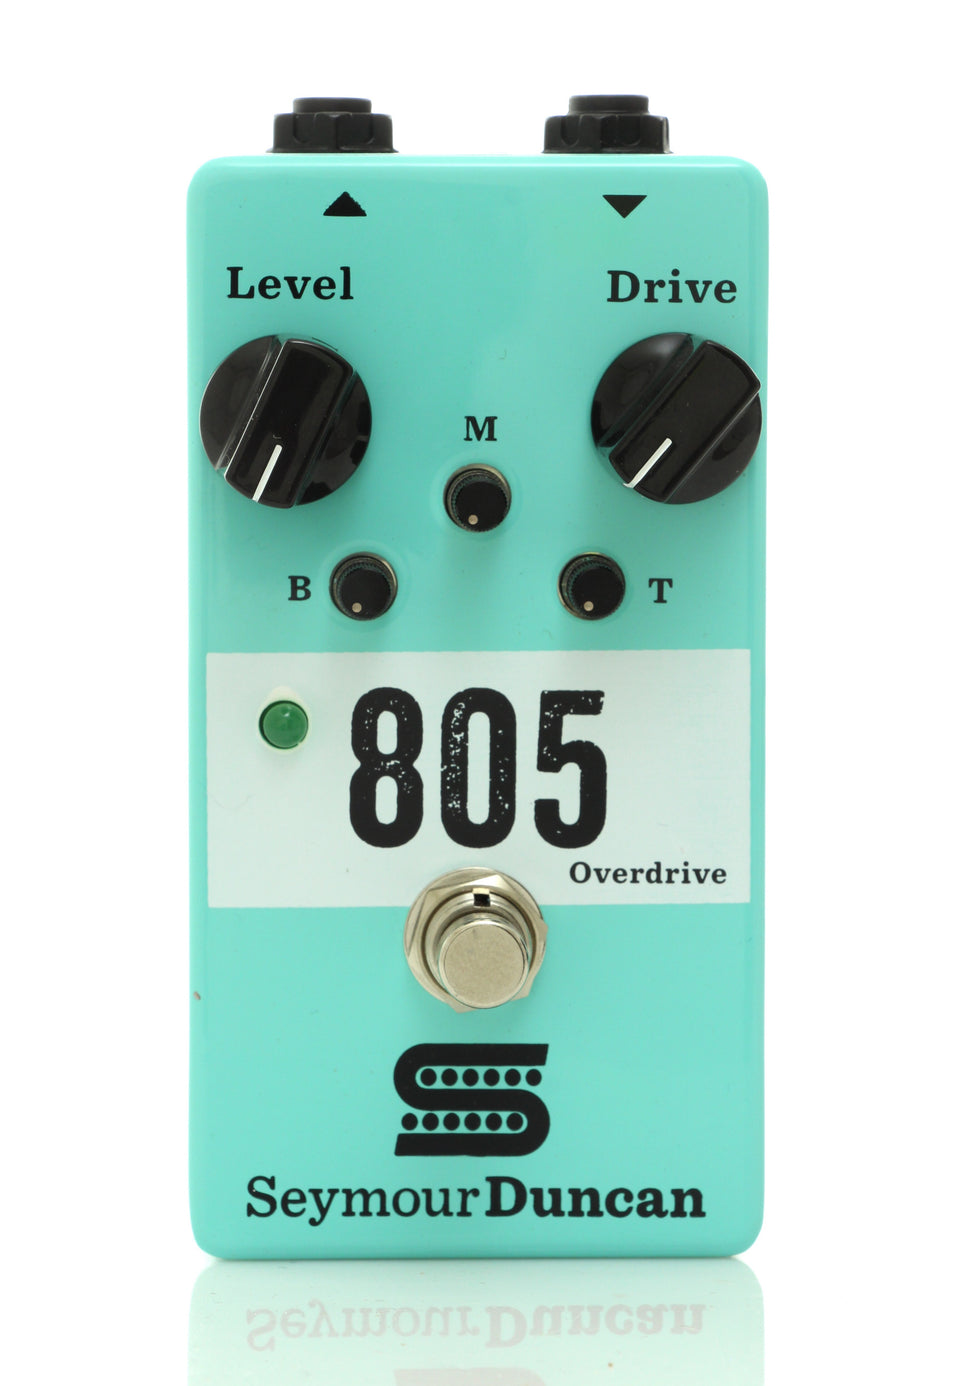 Seymour Duncan 805 Overdrive Pedal